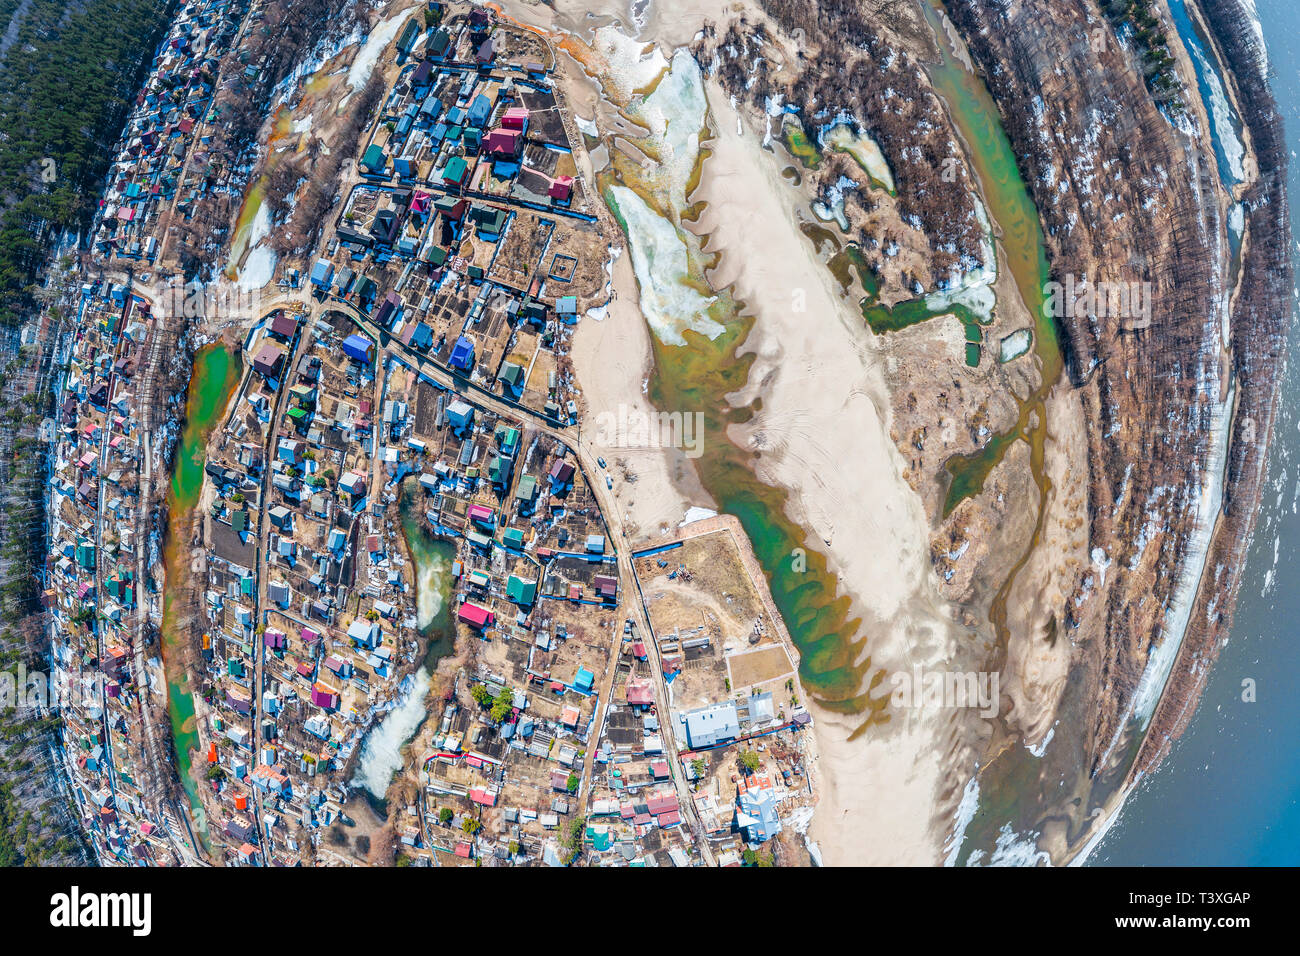 Helicopter drone shot. Aerial photography of a small village with villas and cottages, river, beach,forest and roads. Panoramic city 360  shot from ab - Stock Image